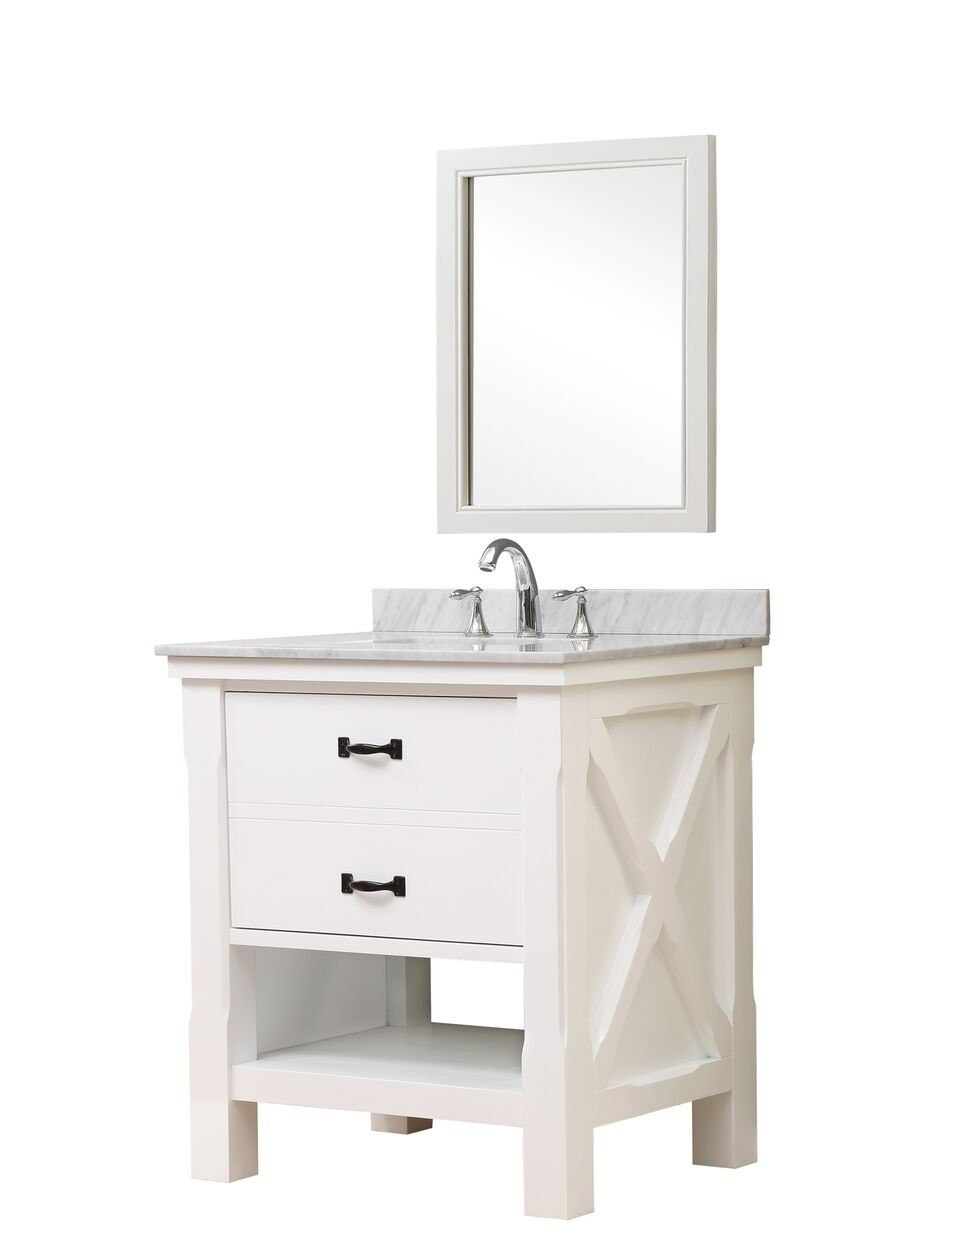 DIRECT VANITY SINK 32S1-WWC-M XTRAORDINARY SPA 32 INCH WHITE VANITY WITH CARRARA WHITE MARBLE TOP AND MIRROR